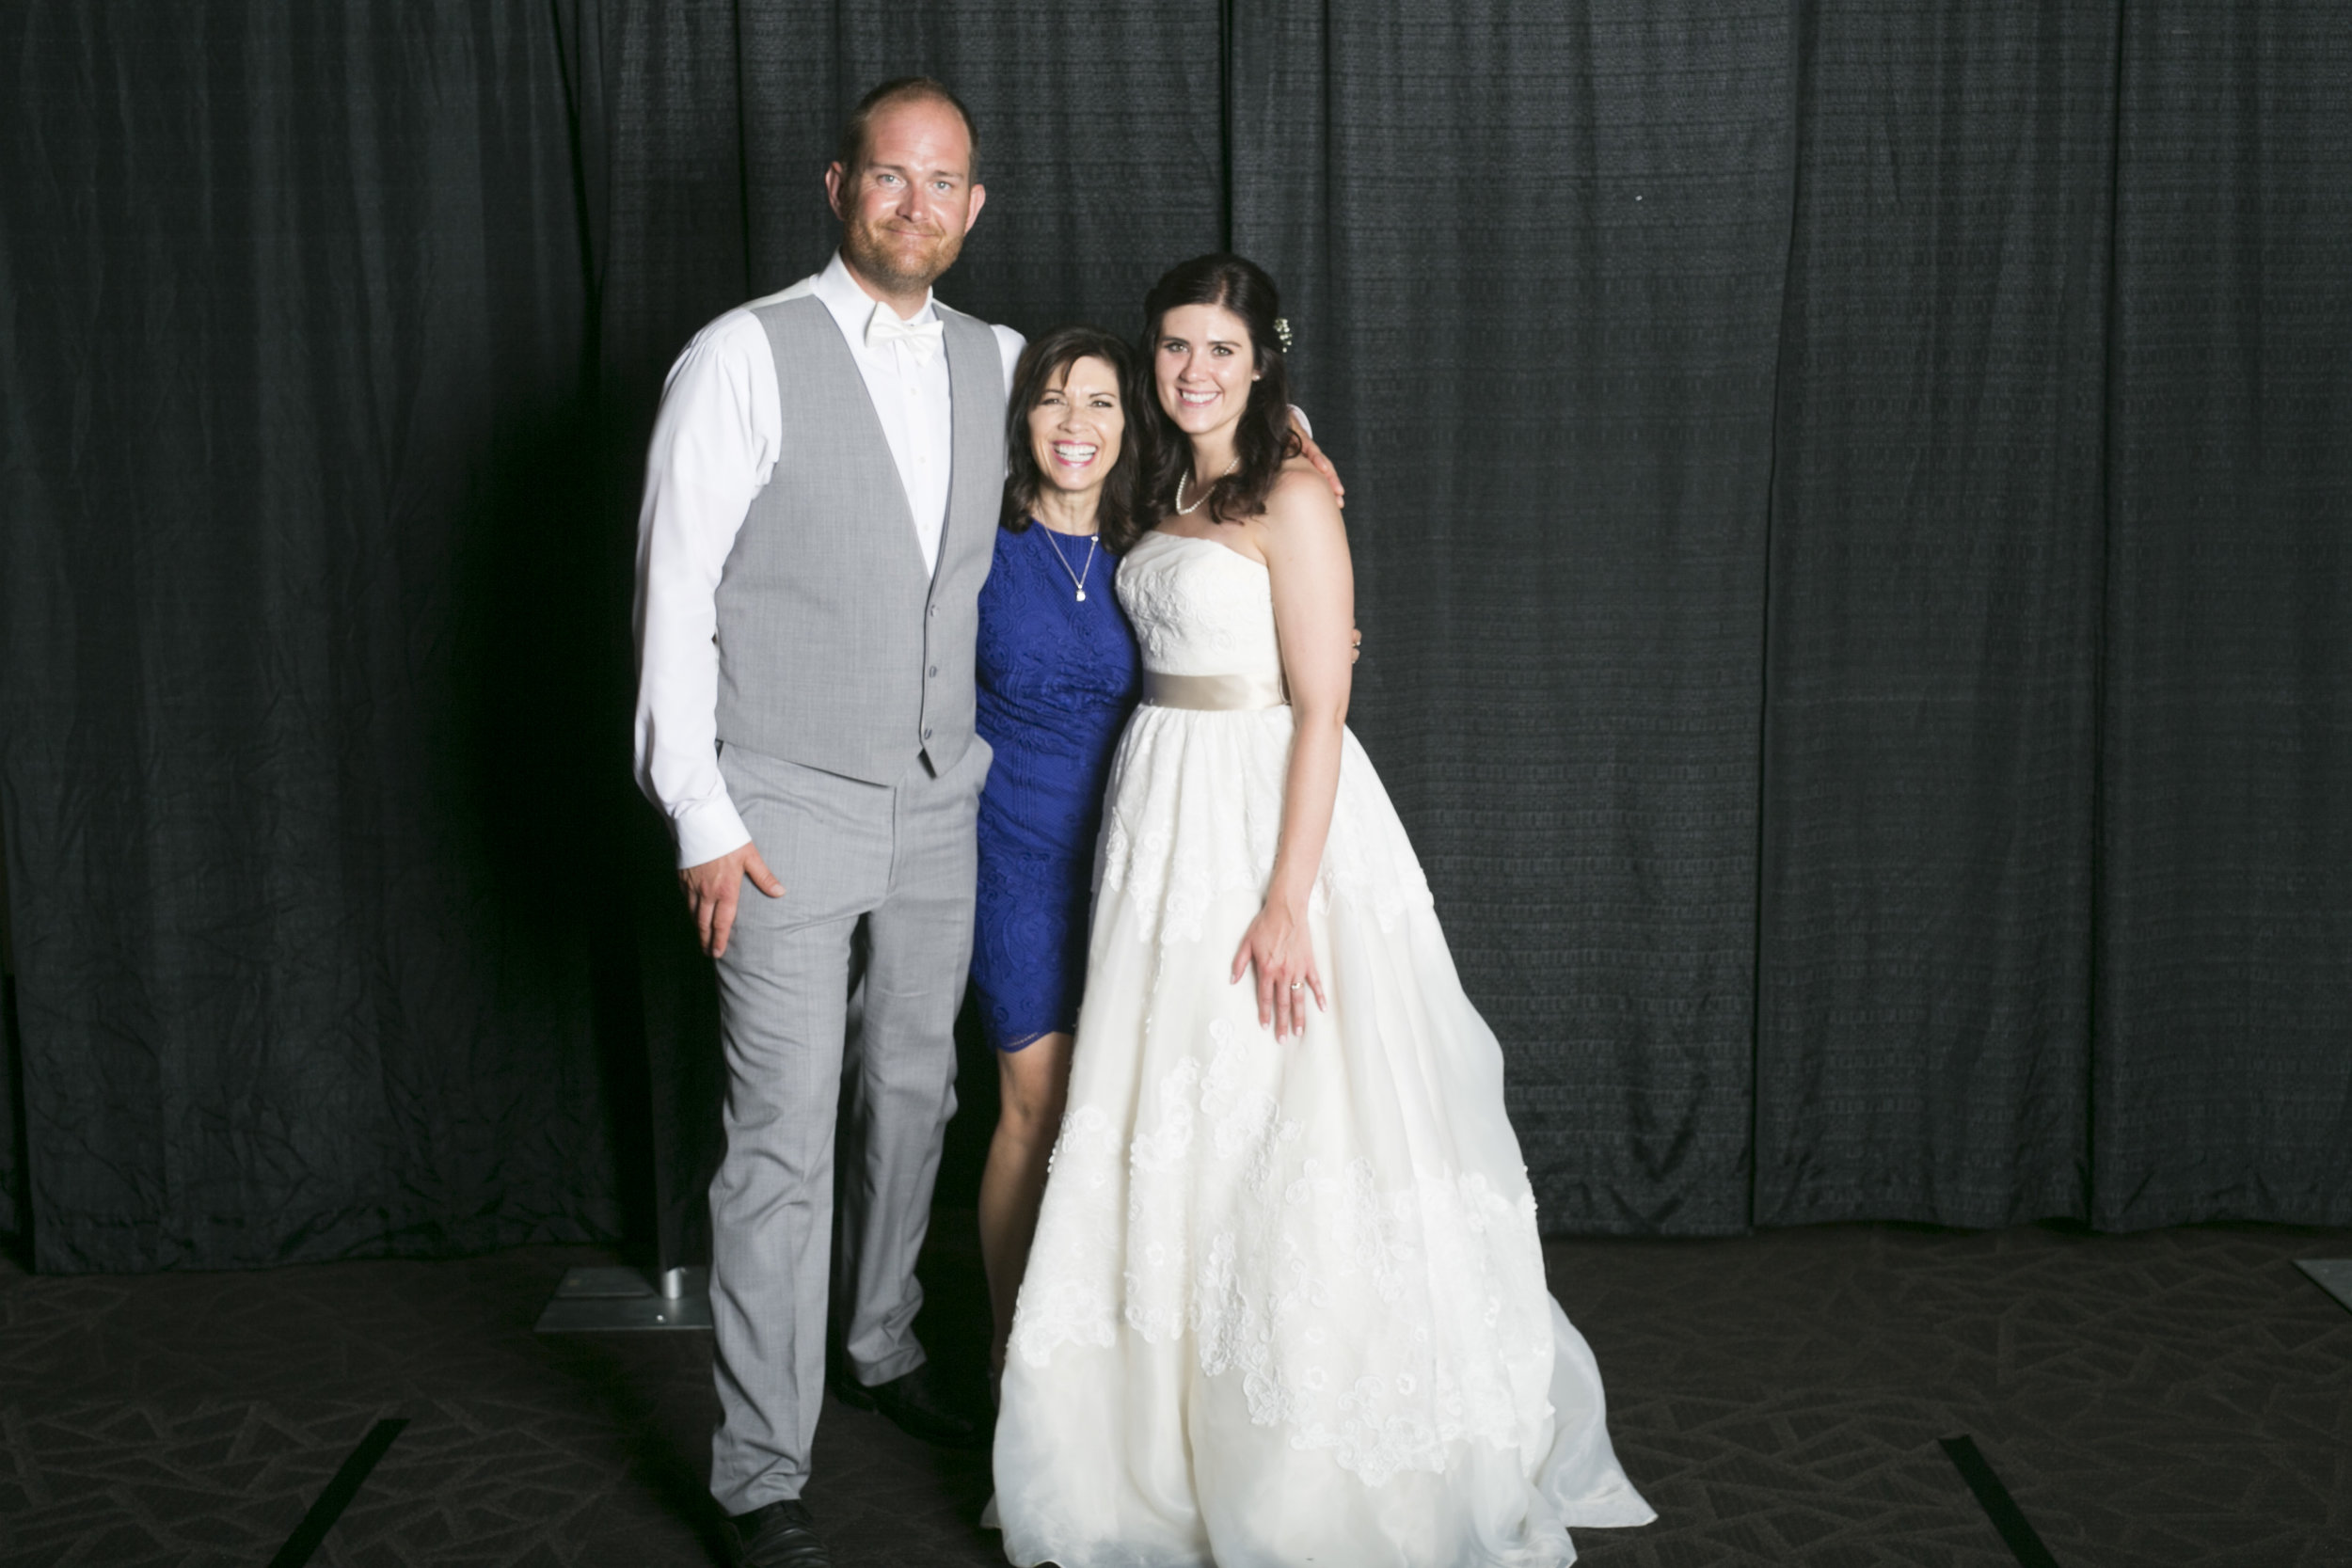 wedding photo booth-64.jpg